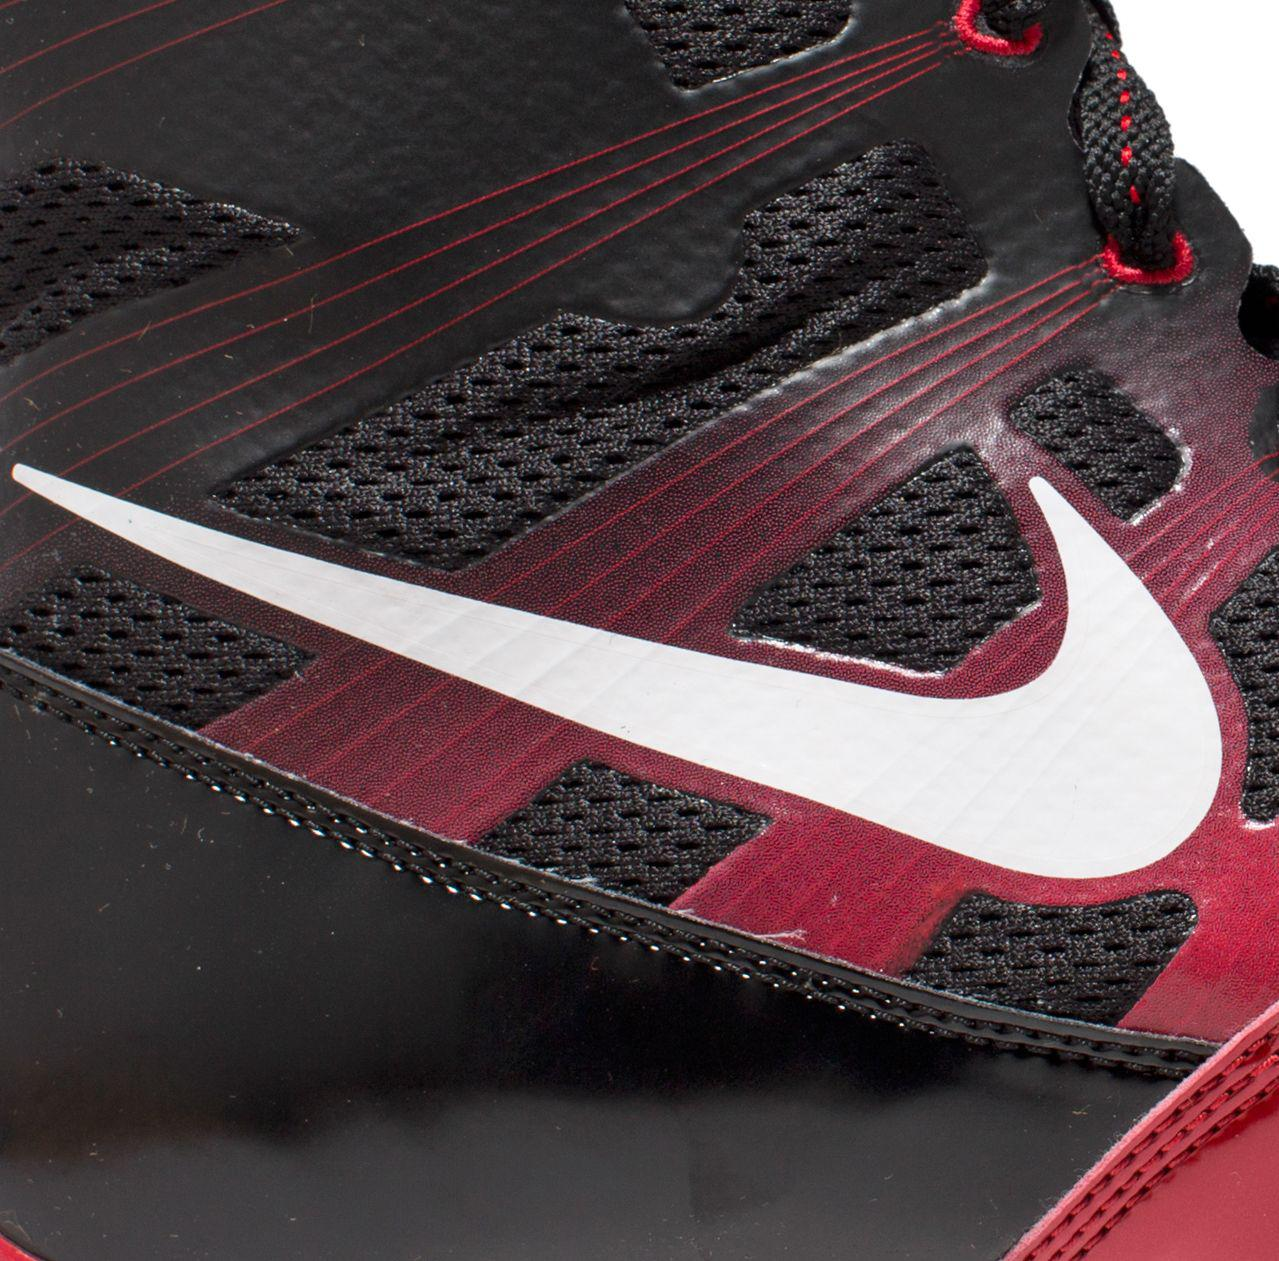 412cfb49be3d Lyst - Nike Hyperko Mp Boxing Shoes in Red for Men